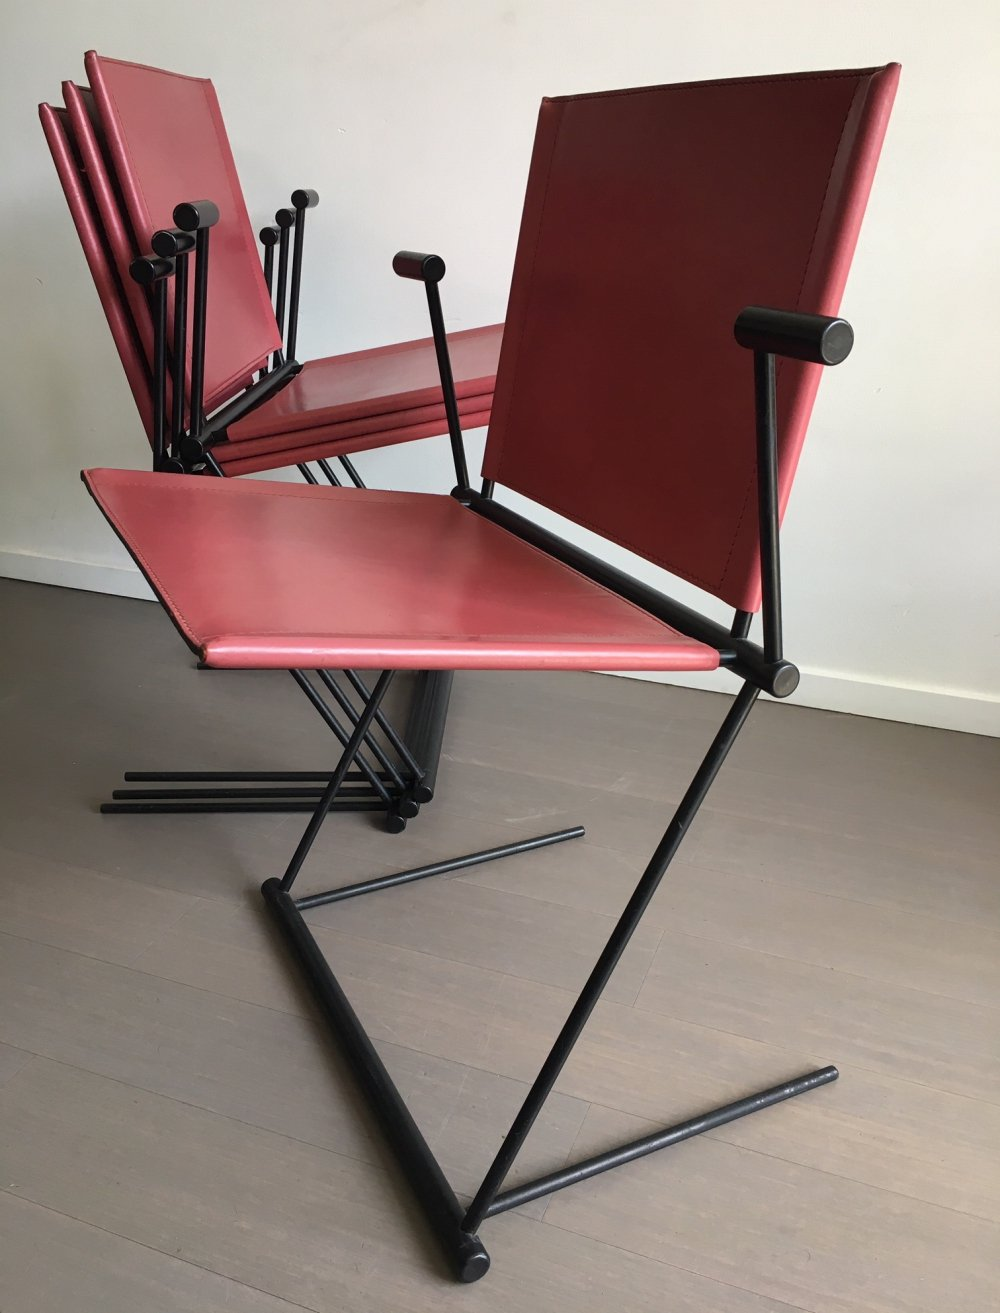 Set of 4 Ballerina dining chairs by Herbert Ohl for Matteo Grassi, 1990s